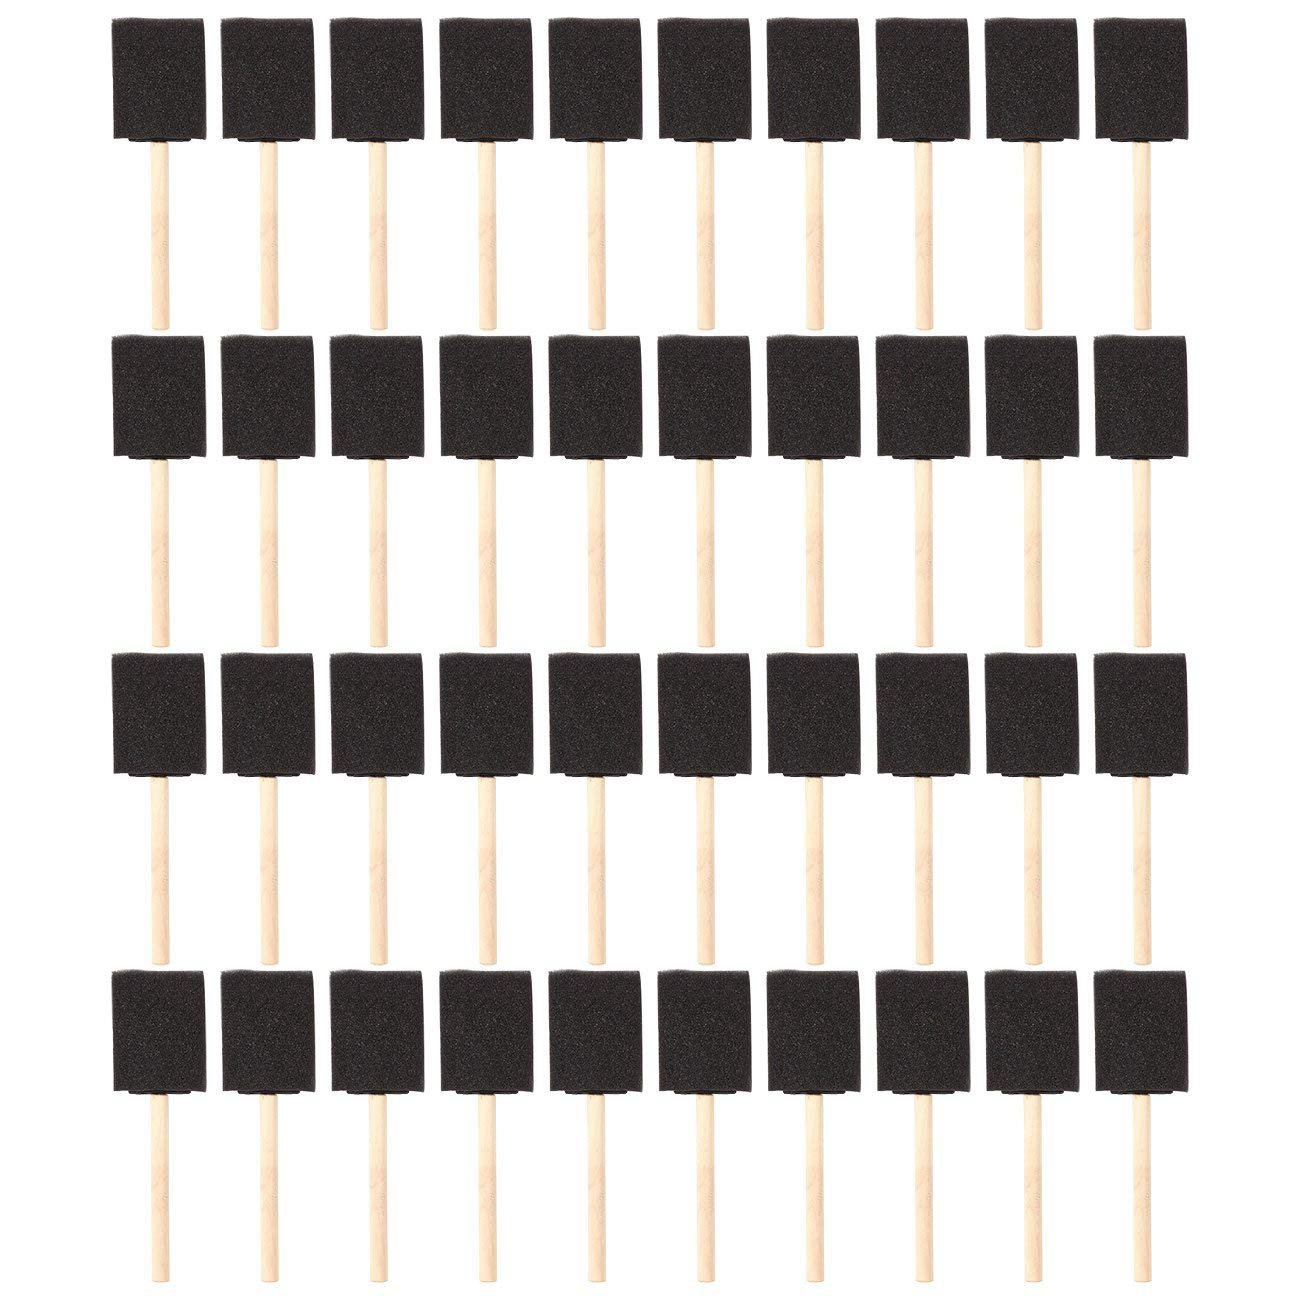 2 inch Foam Sponge Wood Handle Paint Brush Set (Value Pack of 40) - Lightweight, durable and great for Acrylics, Stains, Varni